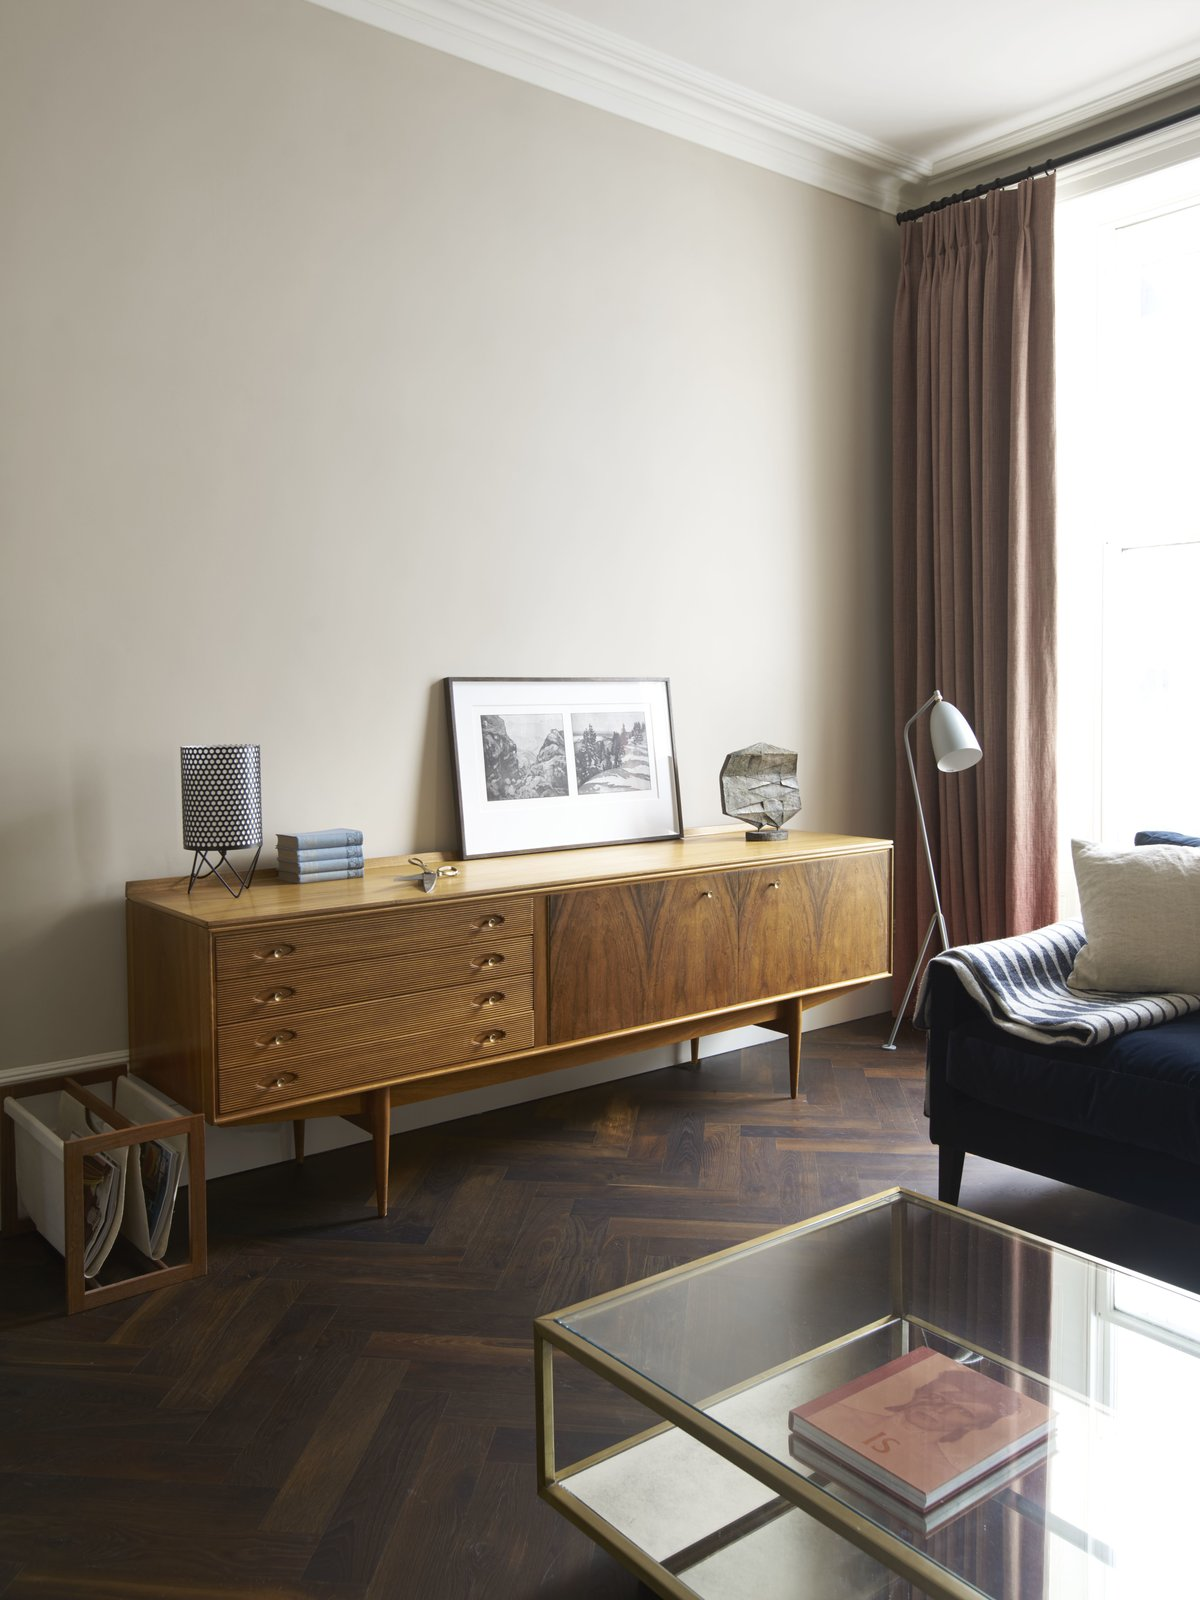 Living Room, Chair, Console Tables, and Coffee Tables  Photo 6 of 10 in A Once-Derelict London House Restored With Modern Elegance